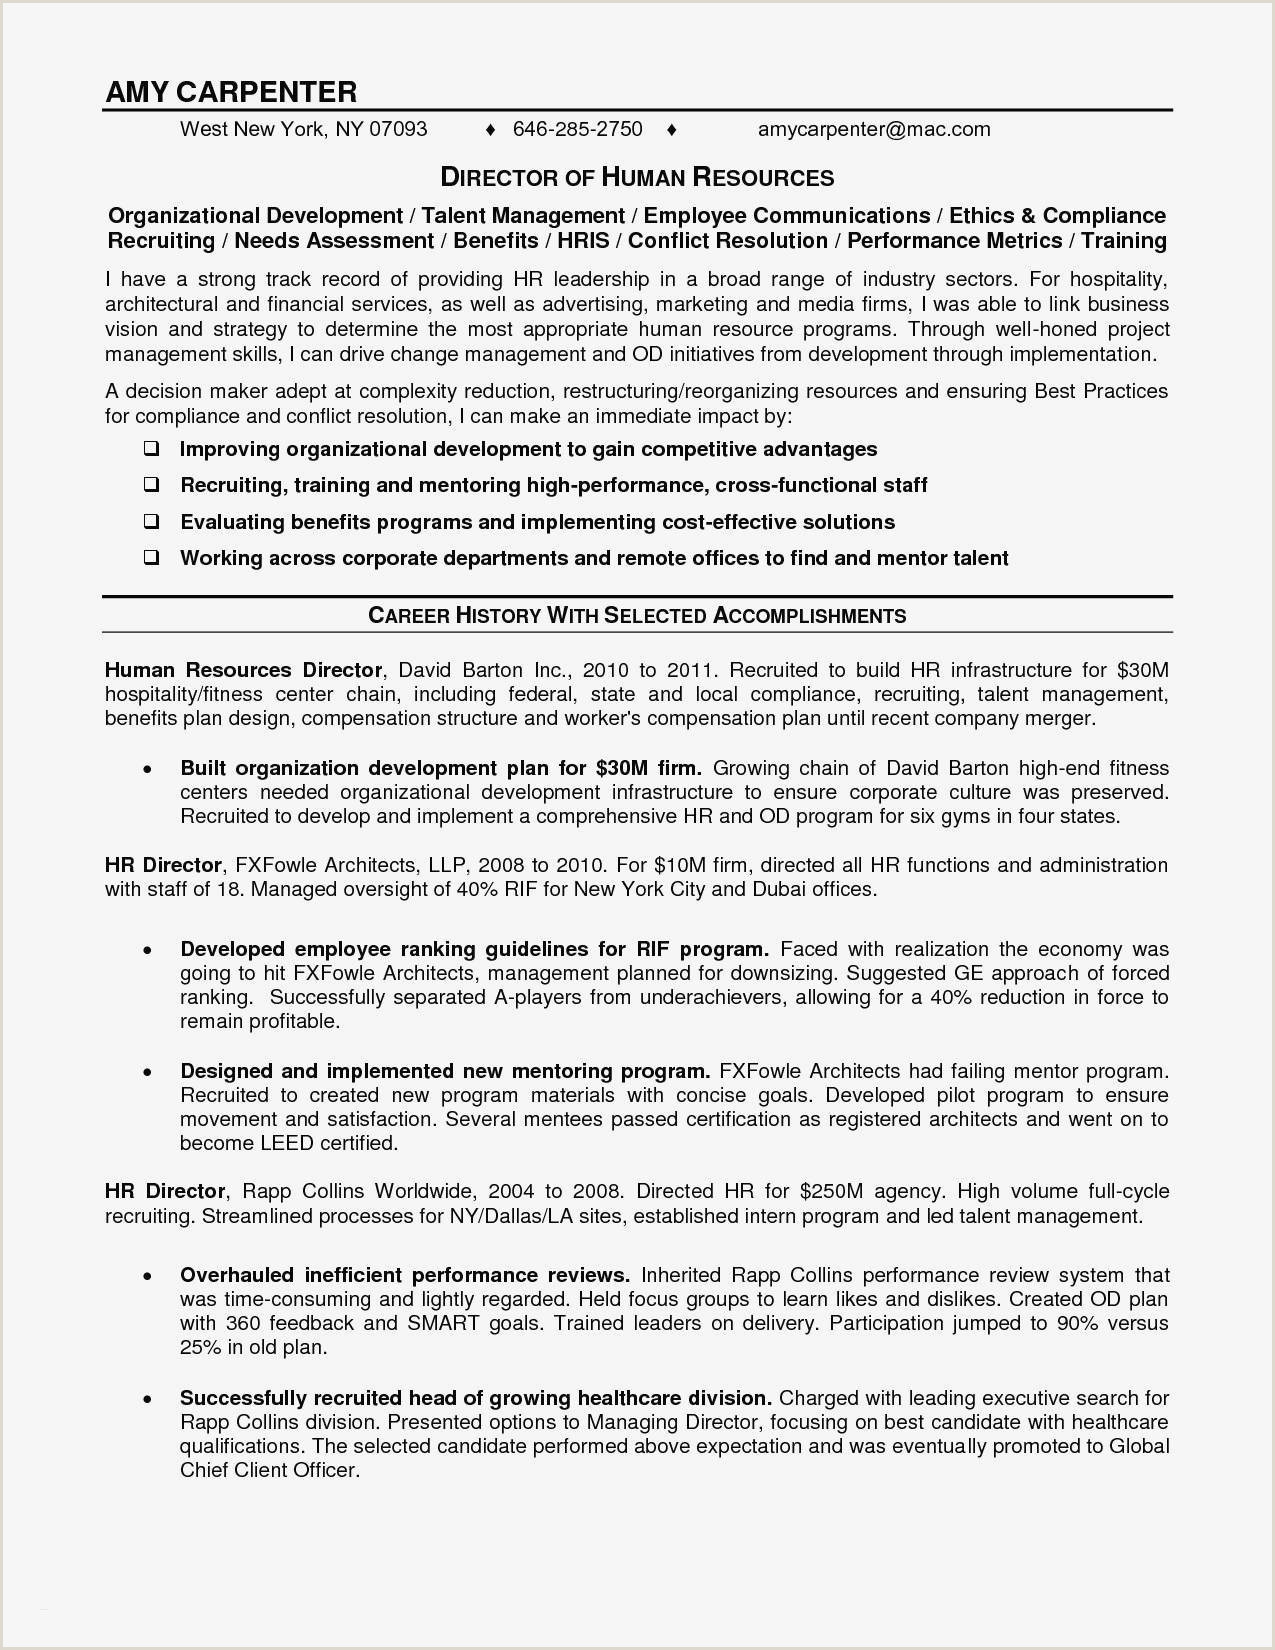 Freshers Resume format for Engineers Free Download Telecharger Cv Gratuit Unique Resume format for Freshers